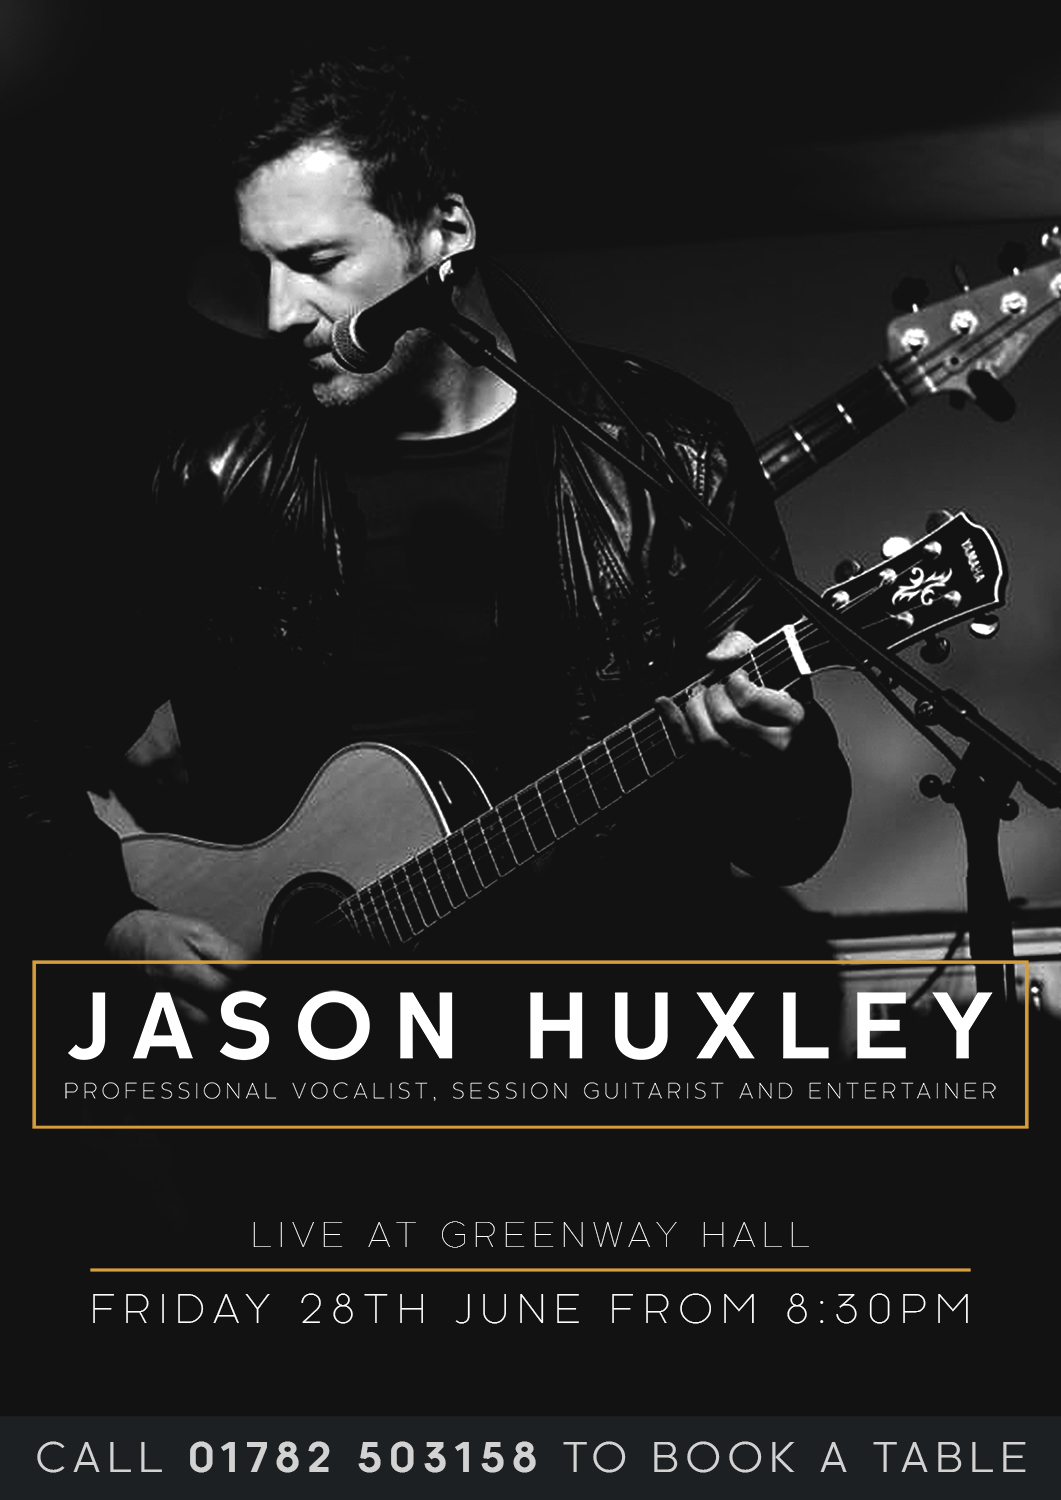 Book a table to come and see Jason Huxley live at Greenway Hall